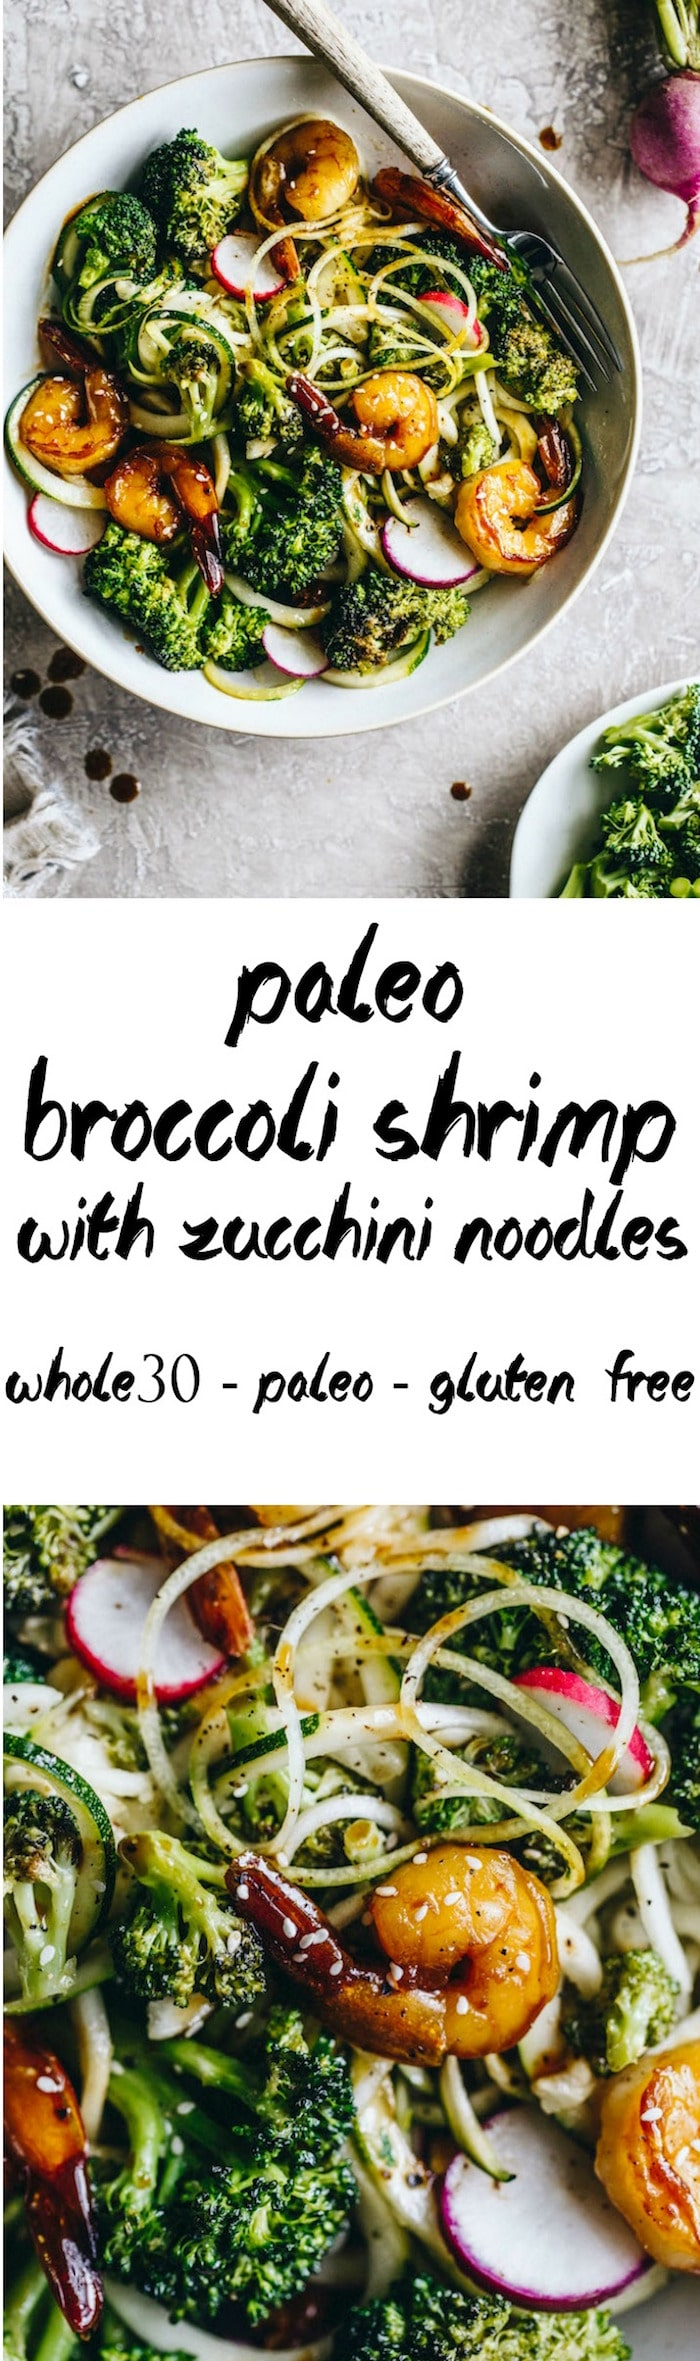 Paleo Broccoli Shrimp marinated with coconut aminos and served atop zucchini noodles #whole30